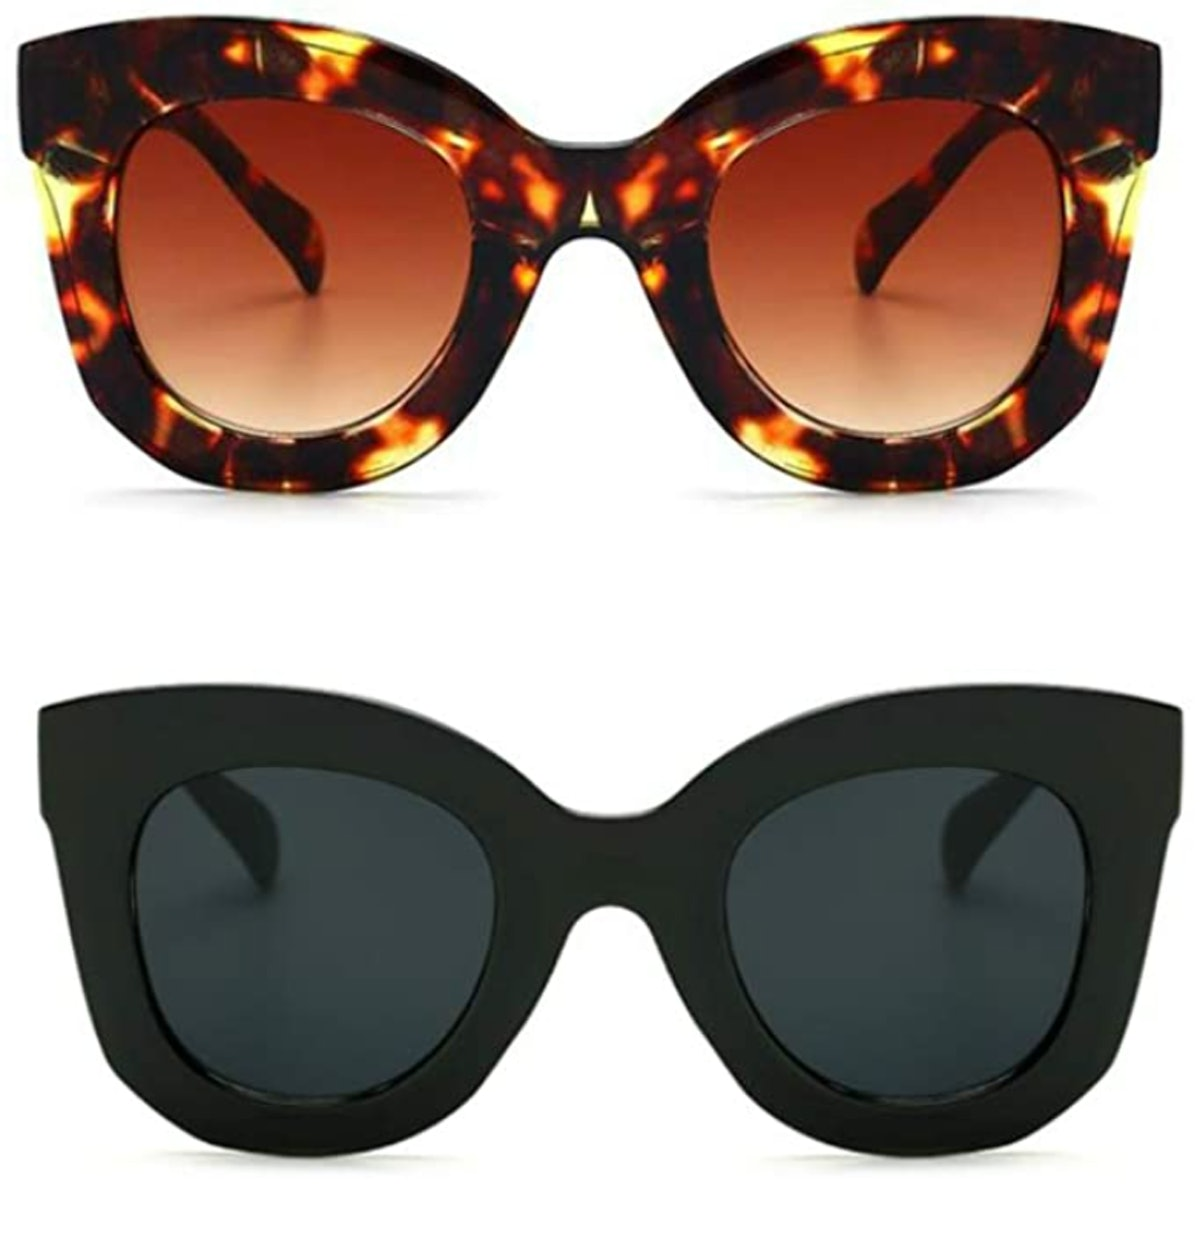 Freckles Mark Butterfly Sunglasses (2-Pack)